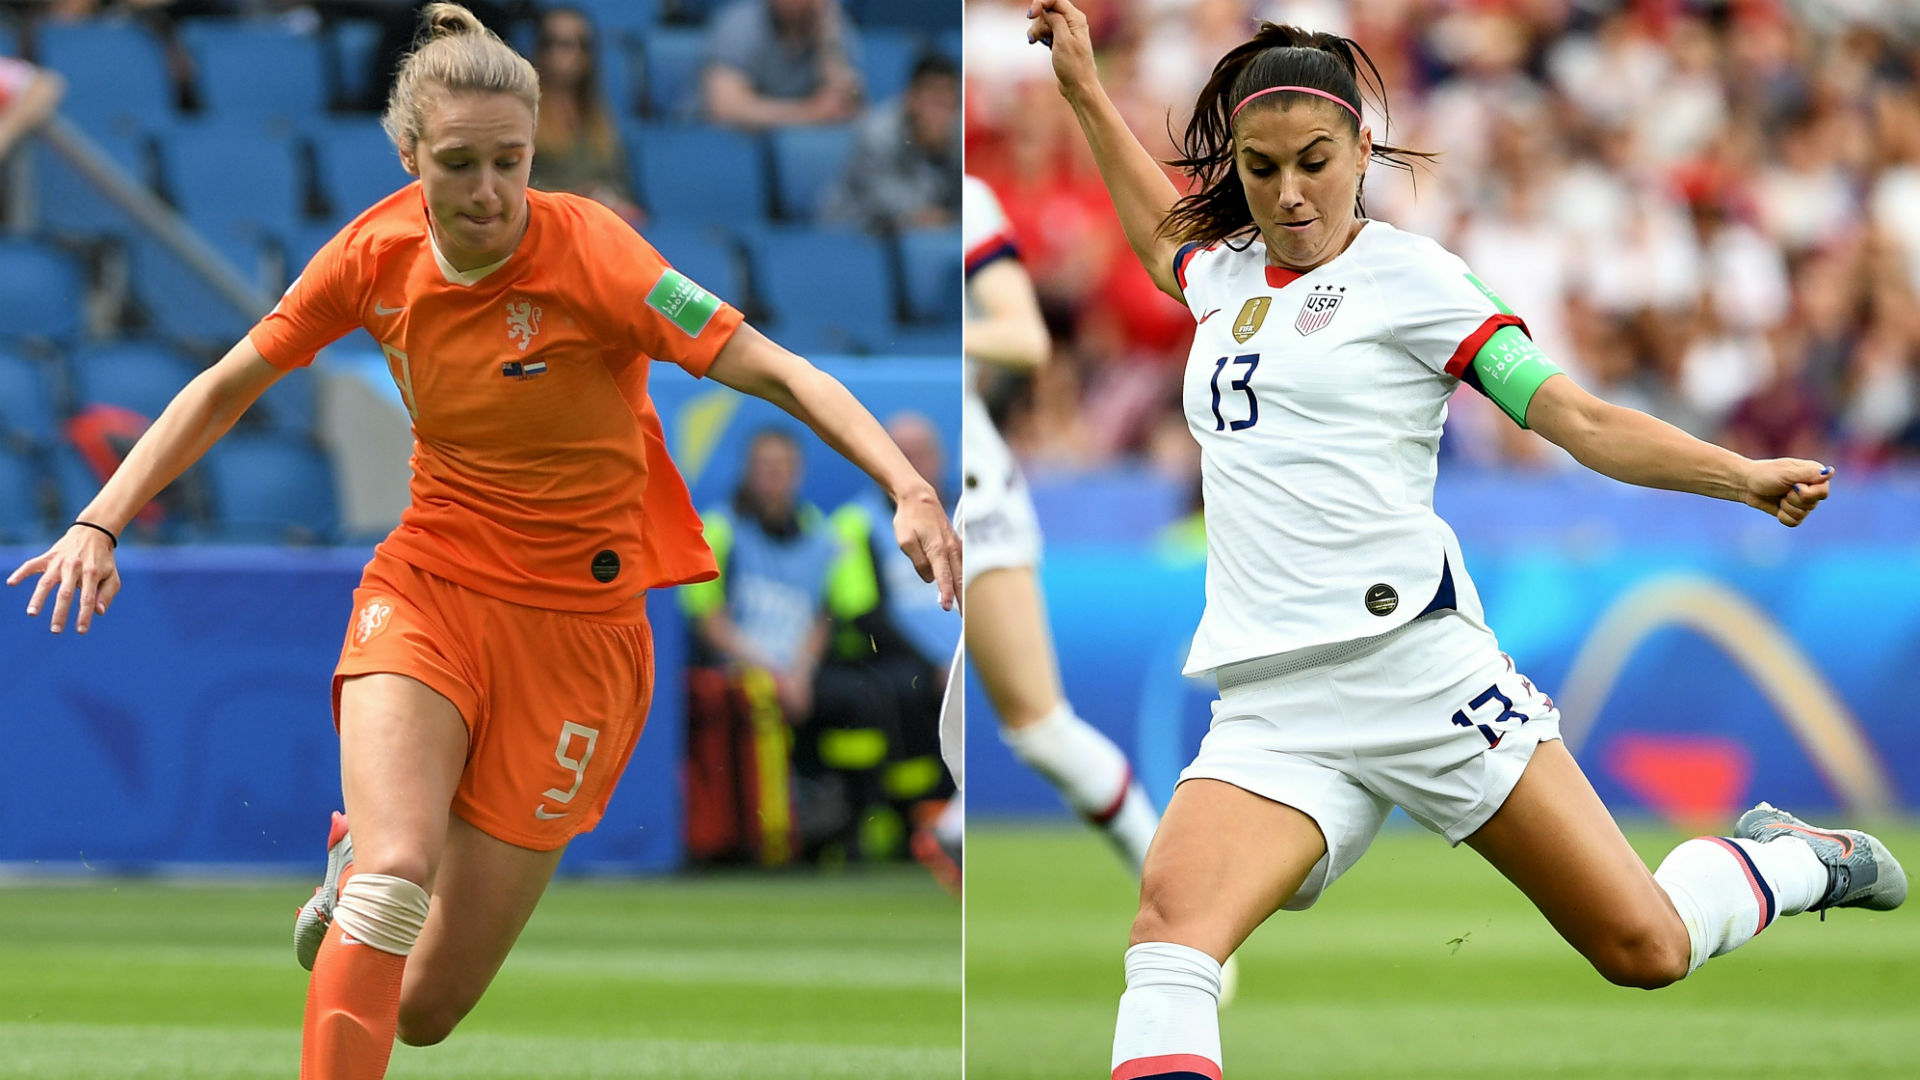 Women's World Cup 2019 preview: What to know, how to watch USWNT vs. Netherlands final